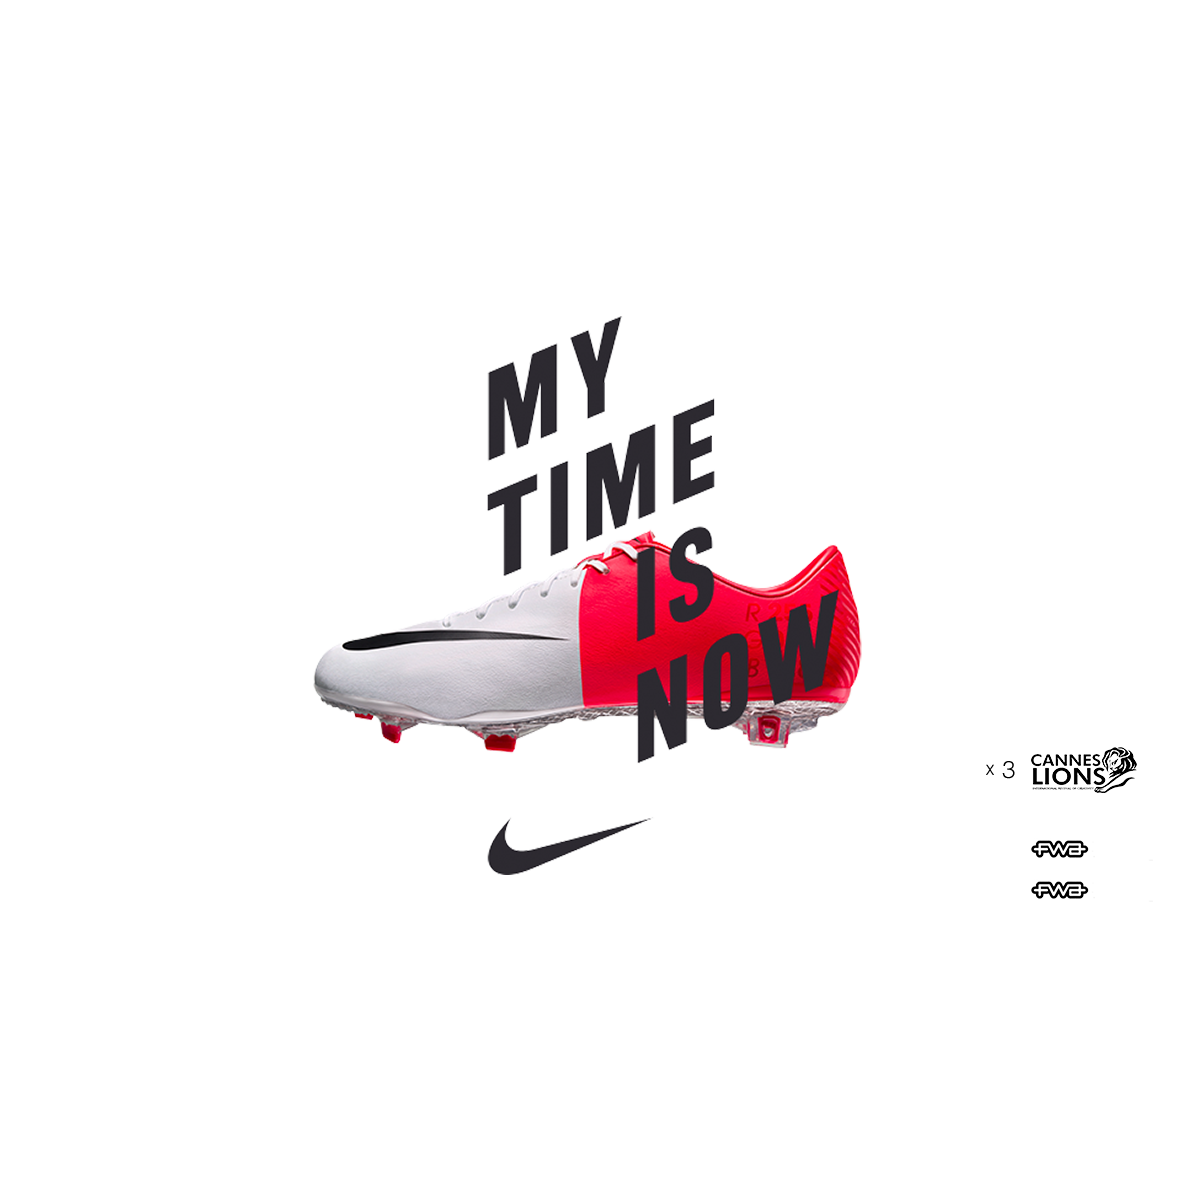 Nike — My Time Is Now